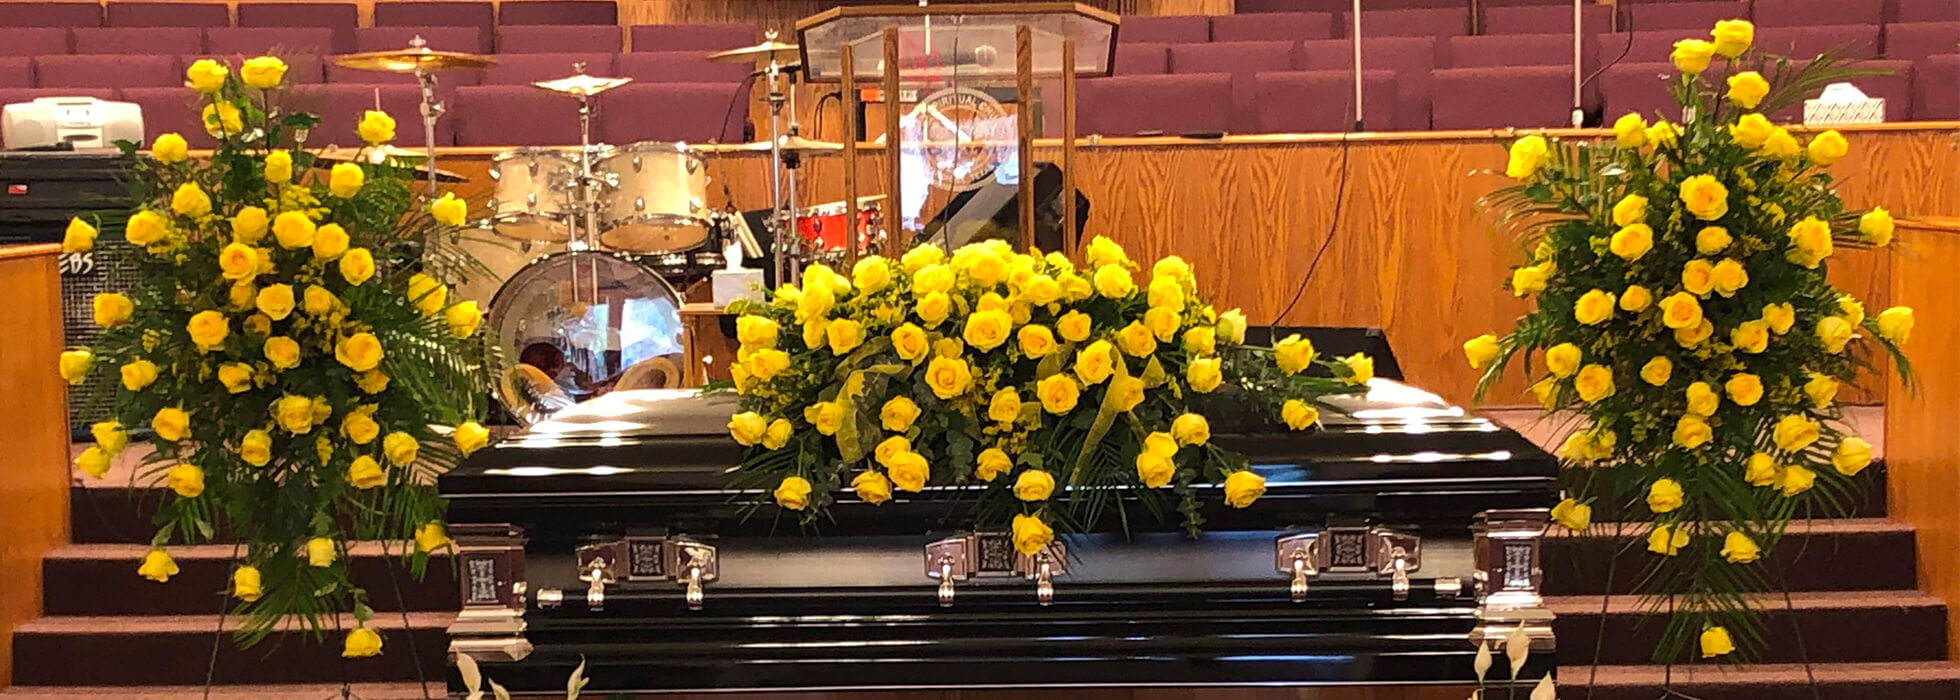 Black's Funeral Home | Carthage TX funeral home and cremation